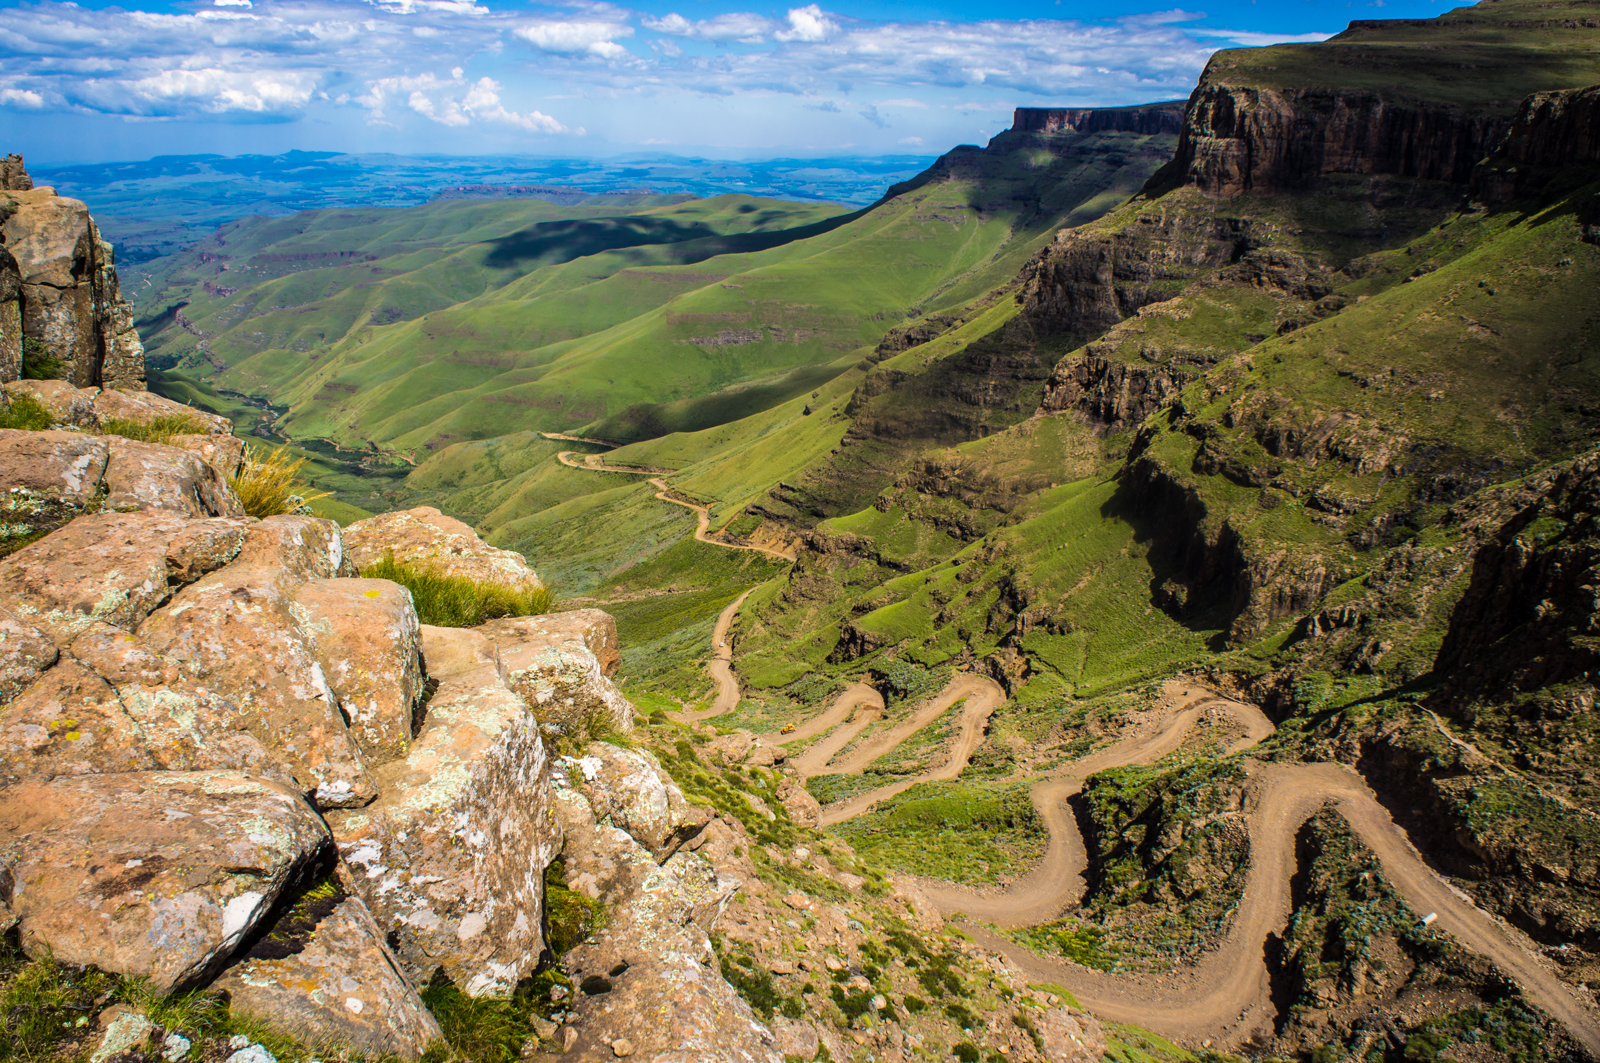 Sani pass wikipedia for Top pictures of the day